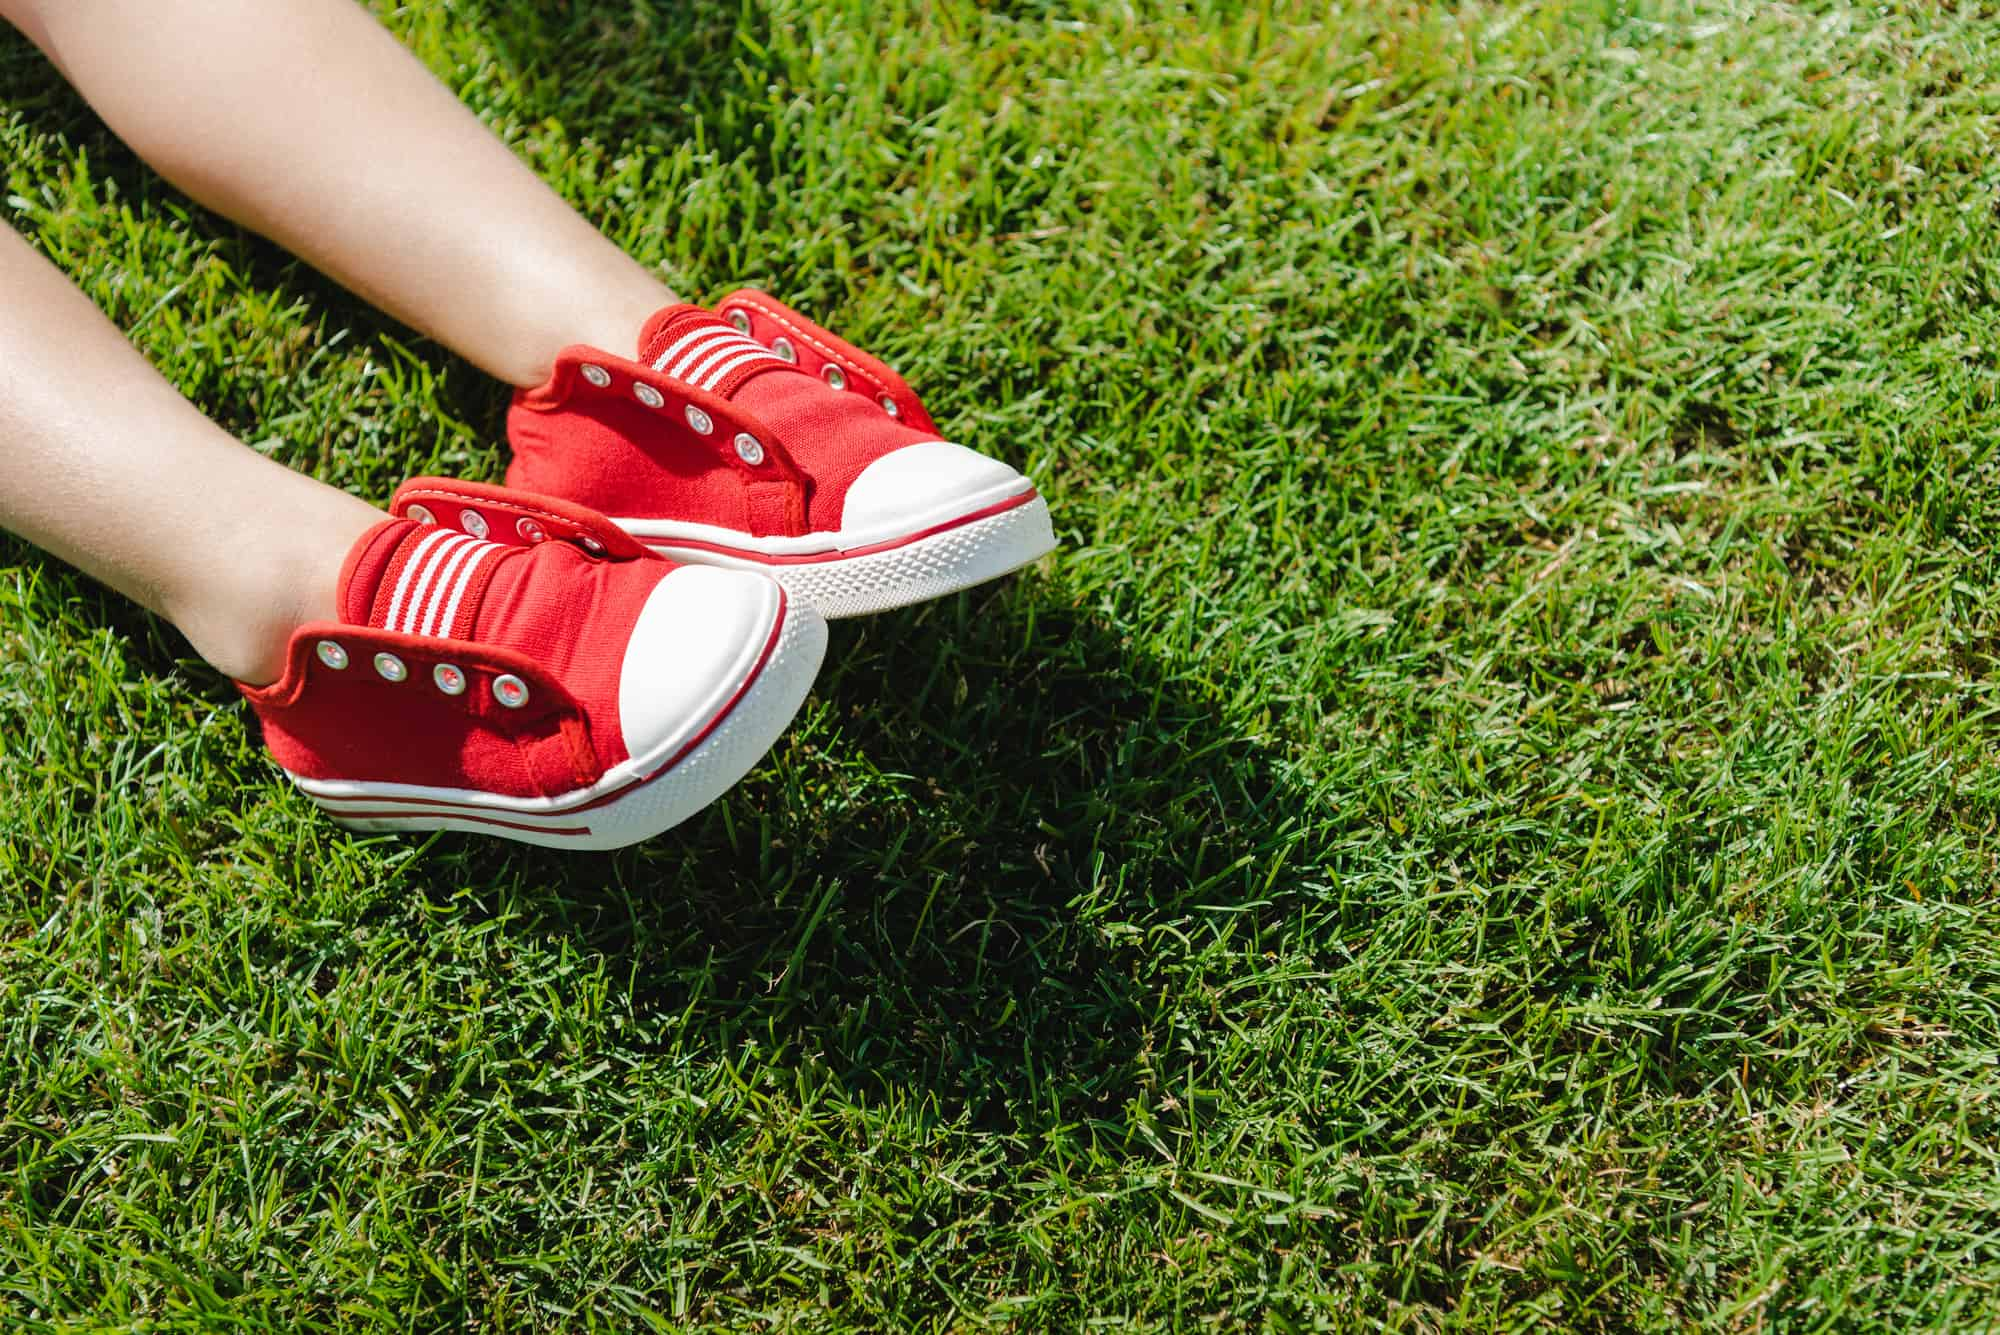 small boy wearing red shoes laying on grass treated as organic land care